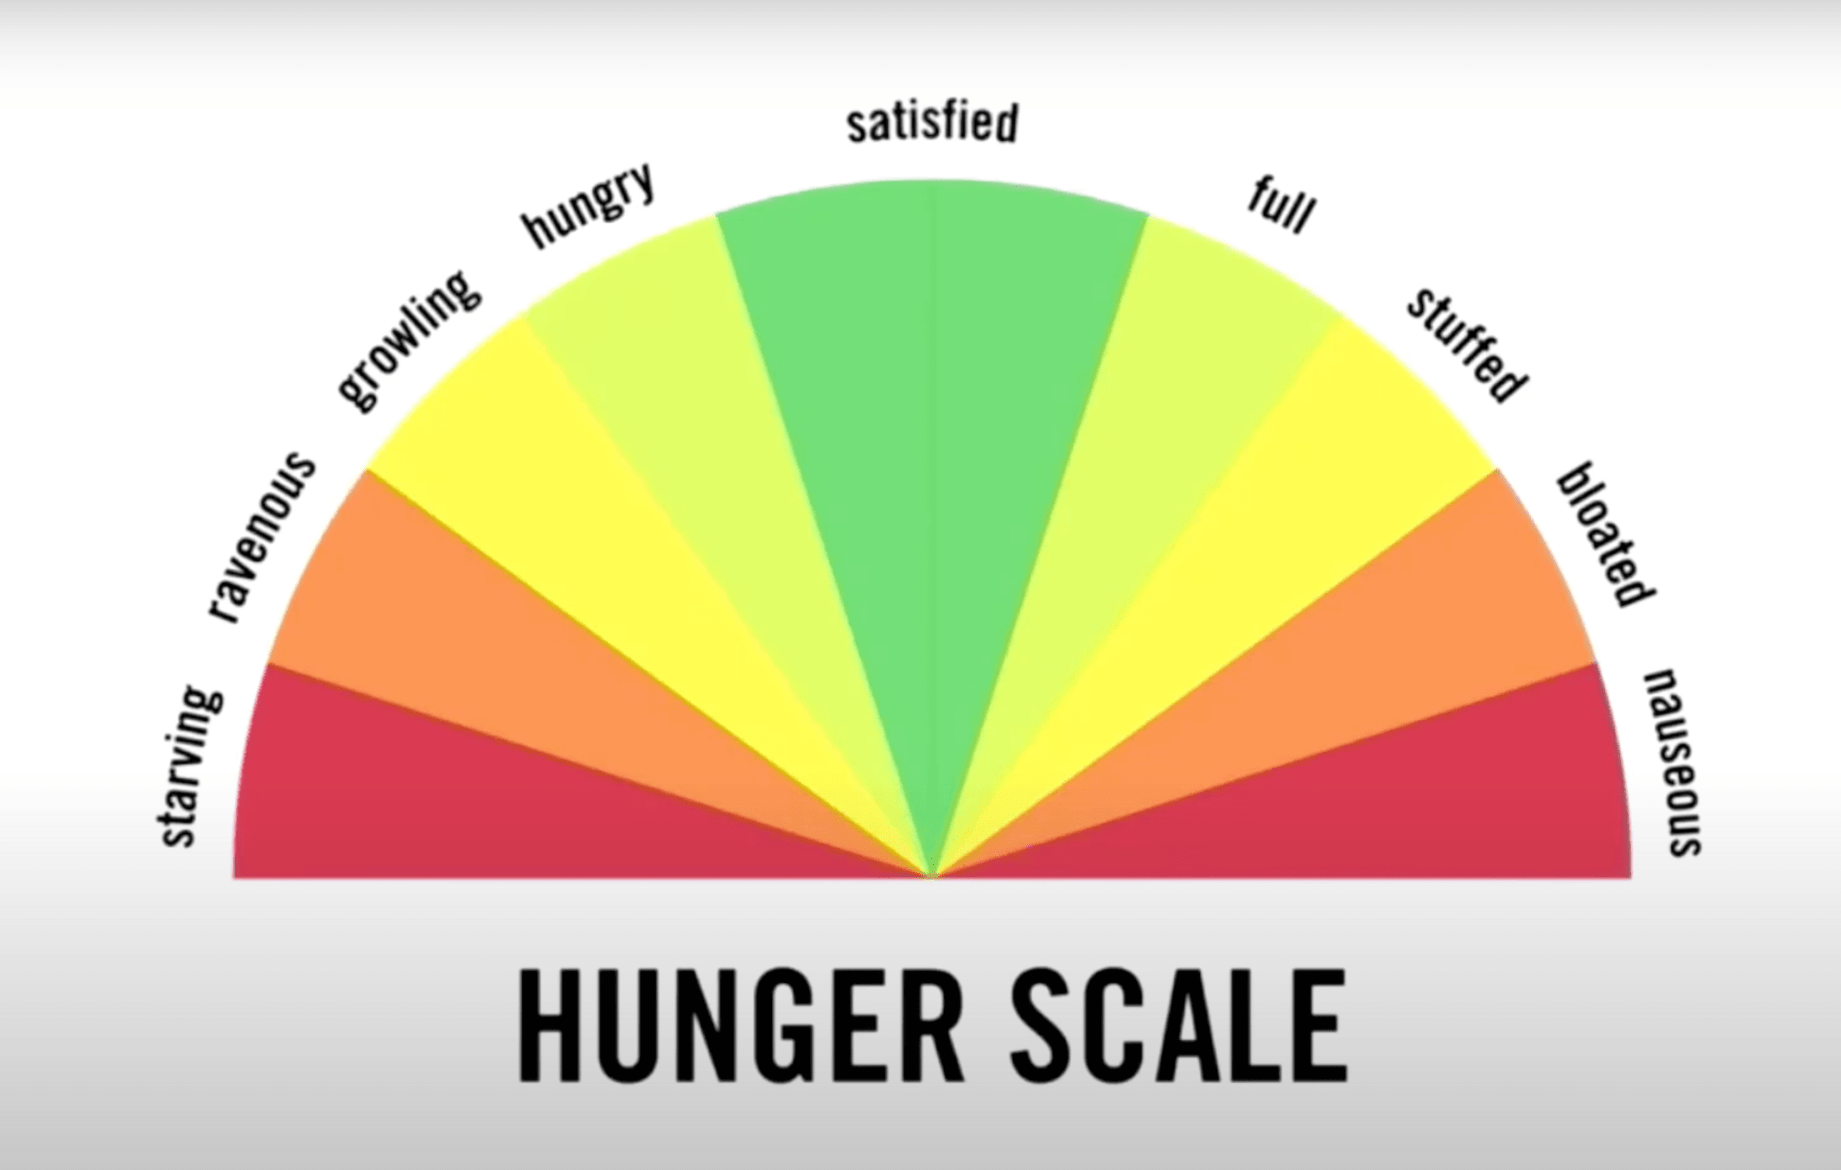 hunger scale, semi circle with red, amber, green to educate about emotional eating